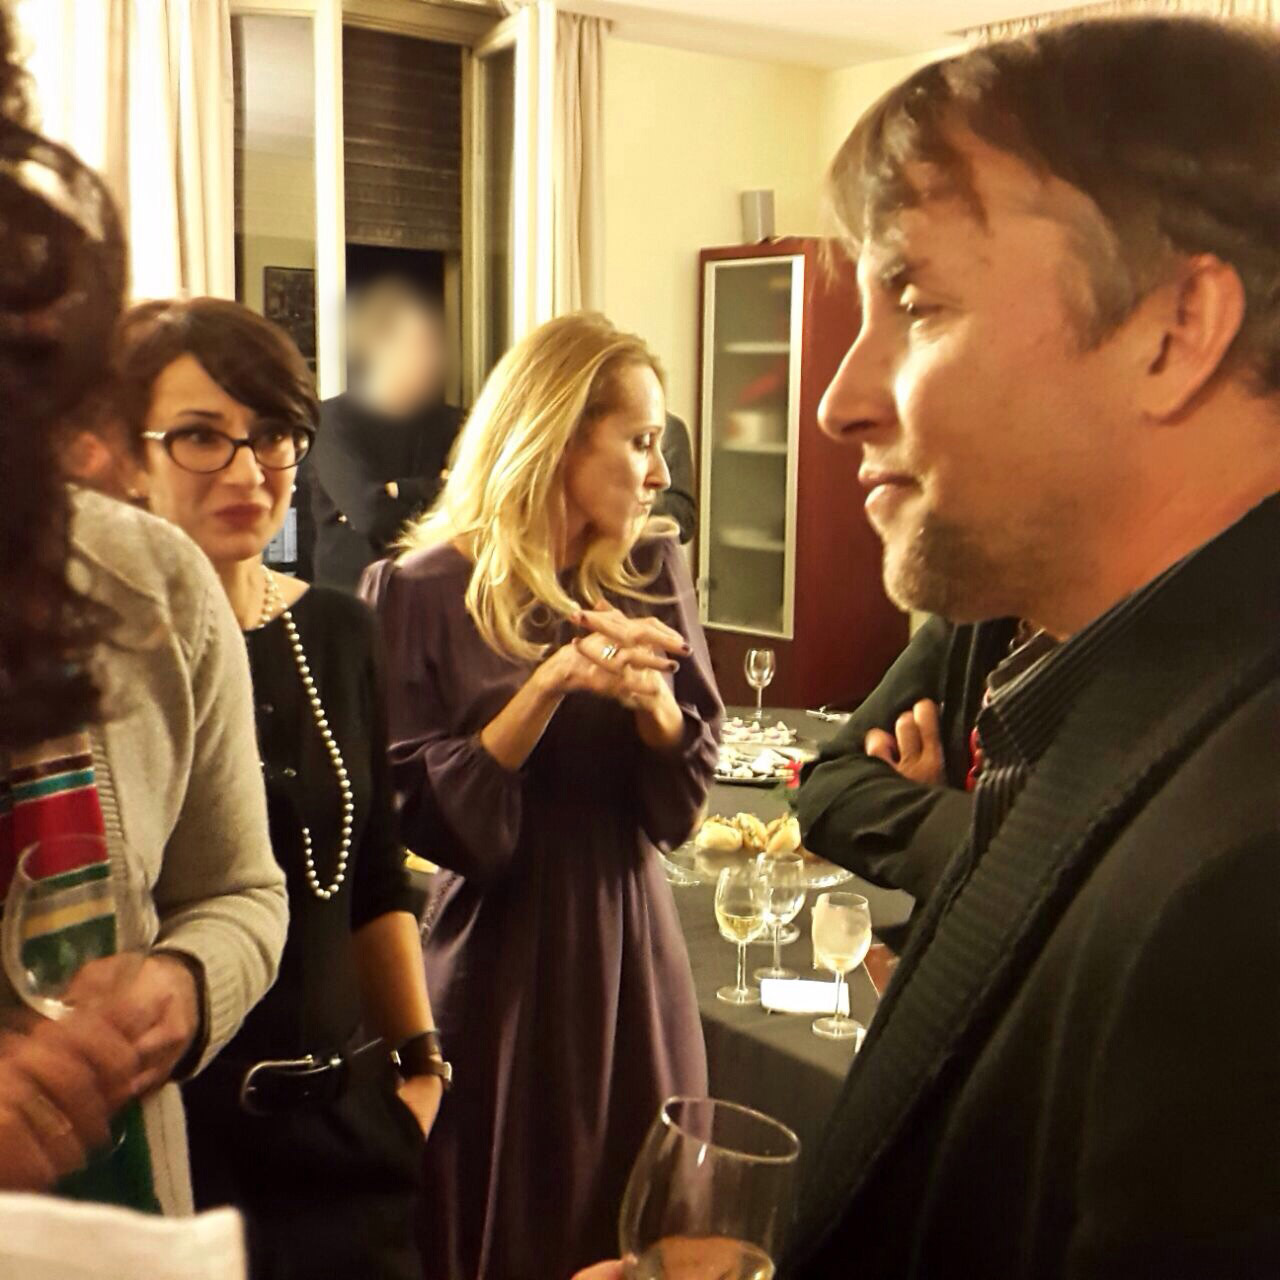 Richard-linklater-Boyhood-event-Rome-Italy